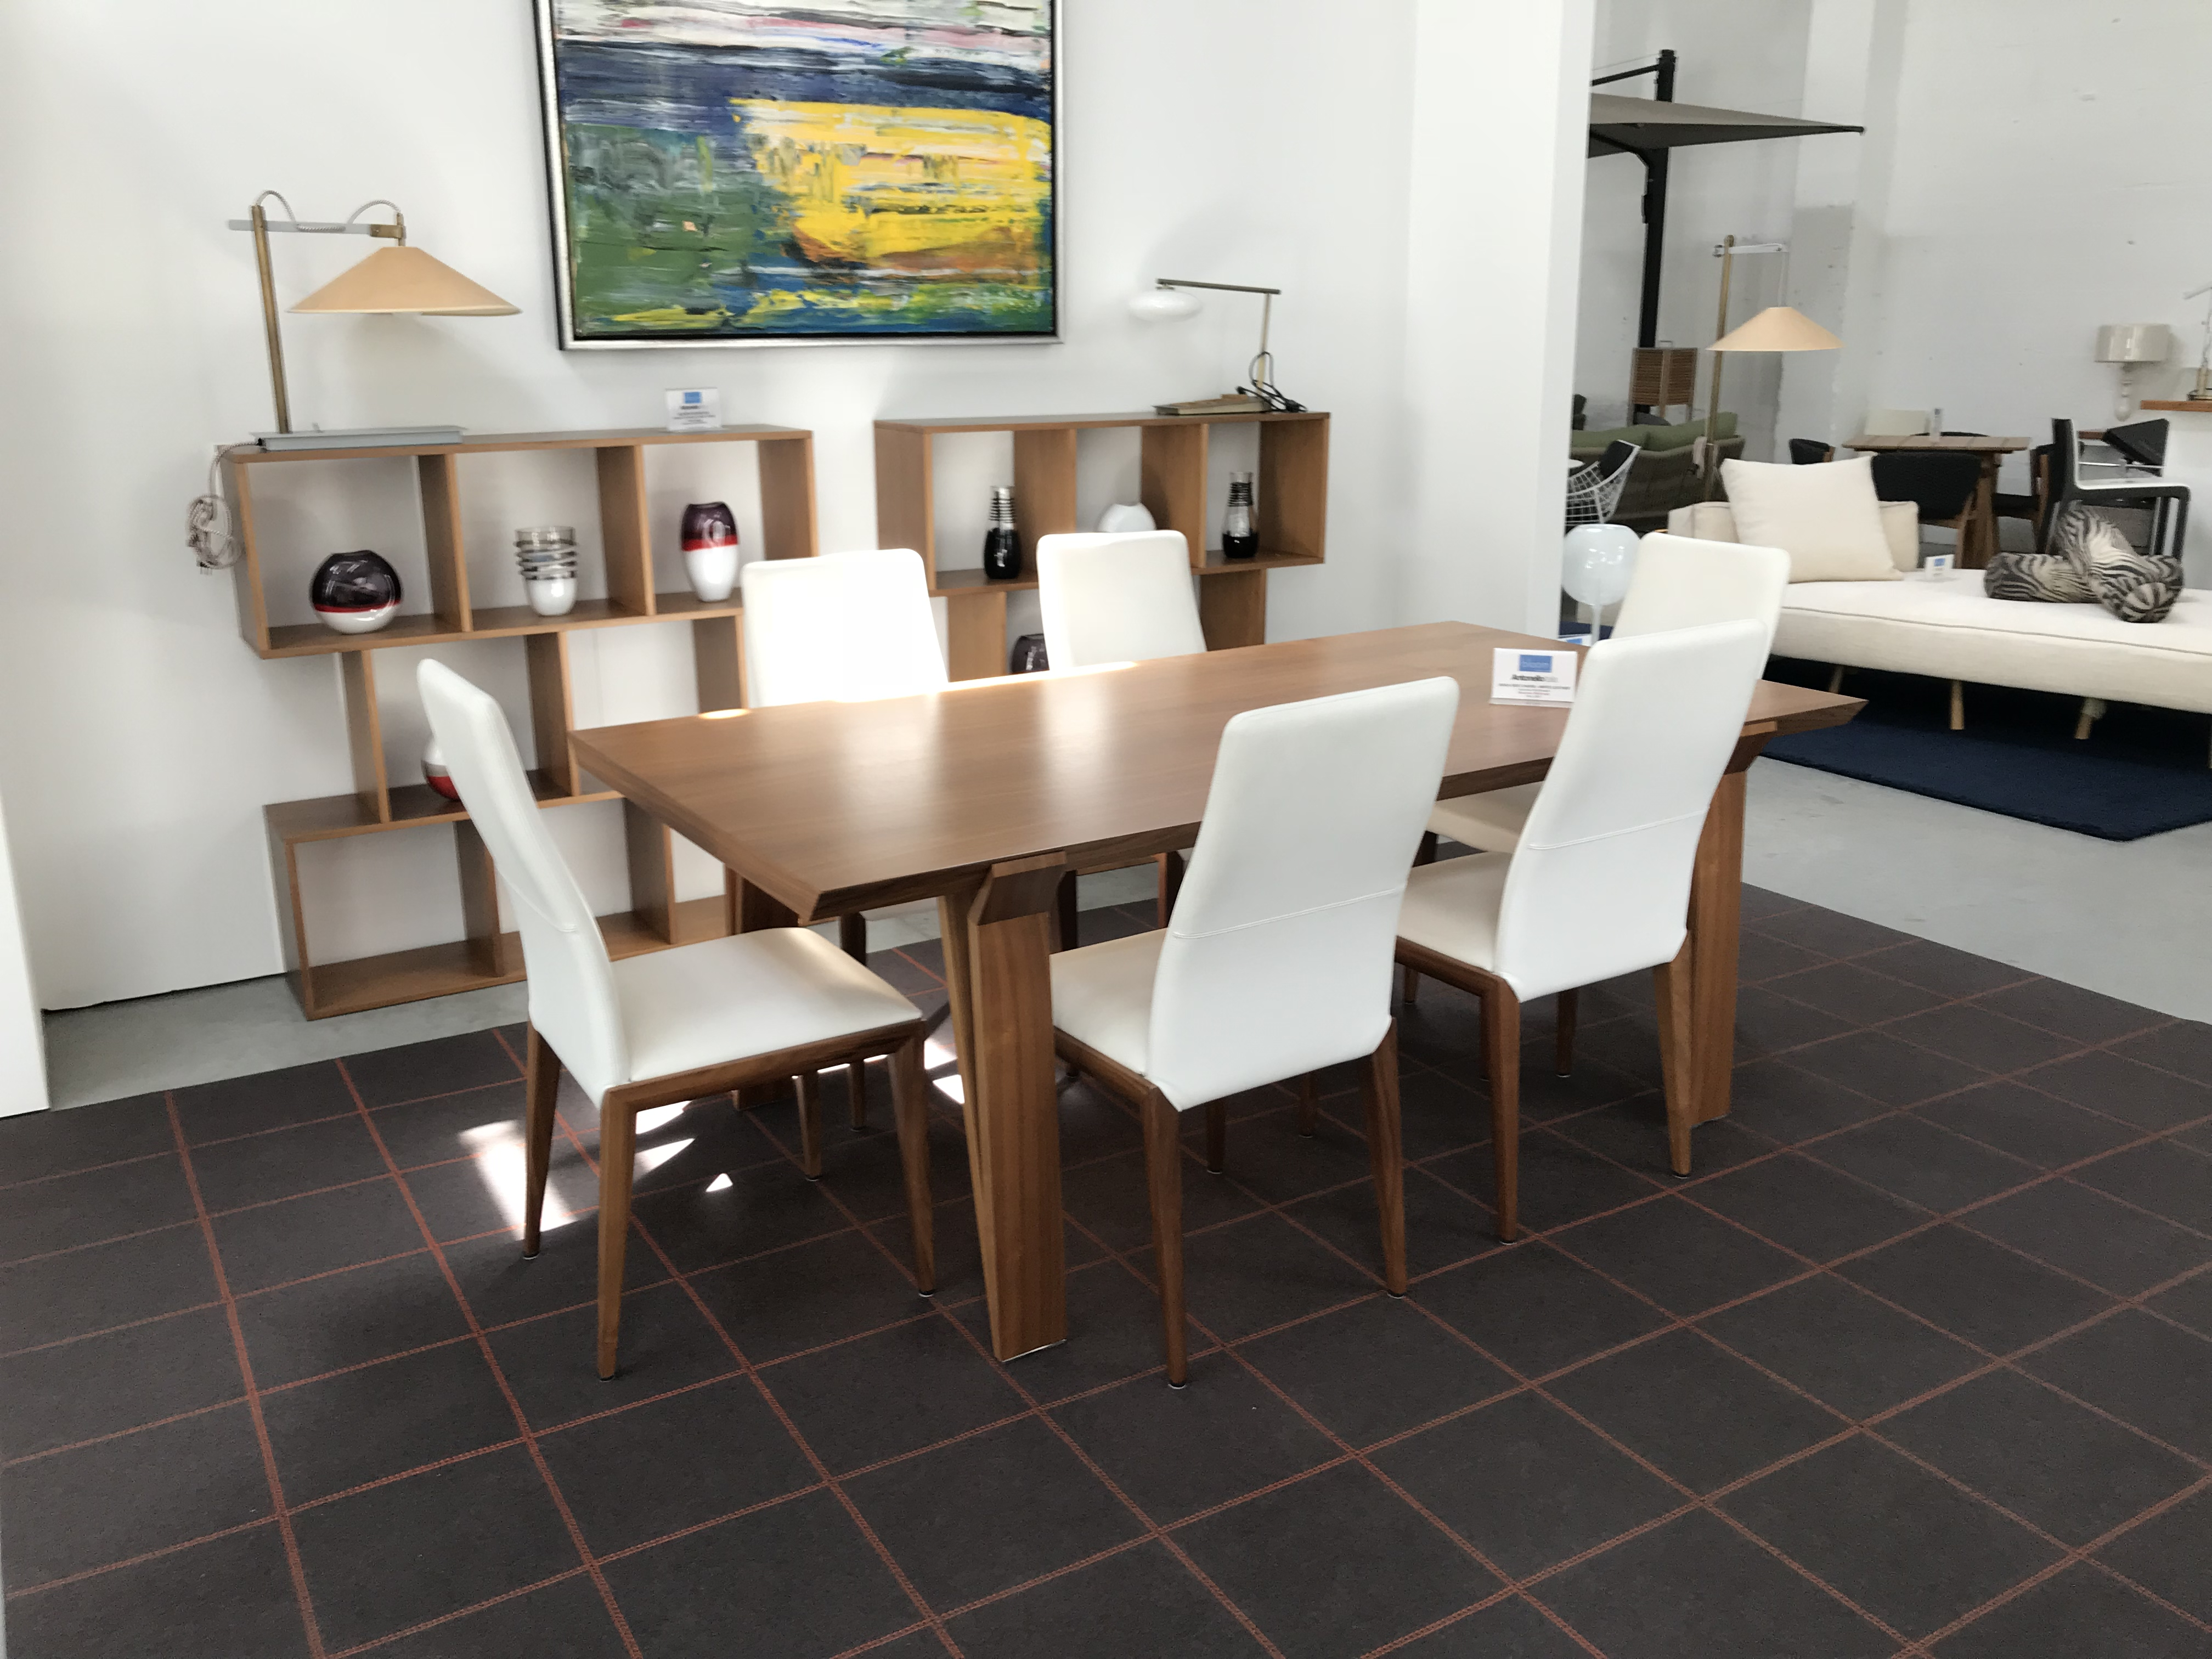 David dining Table - Showroom Clearance Sale - Bloom Funiture Studio